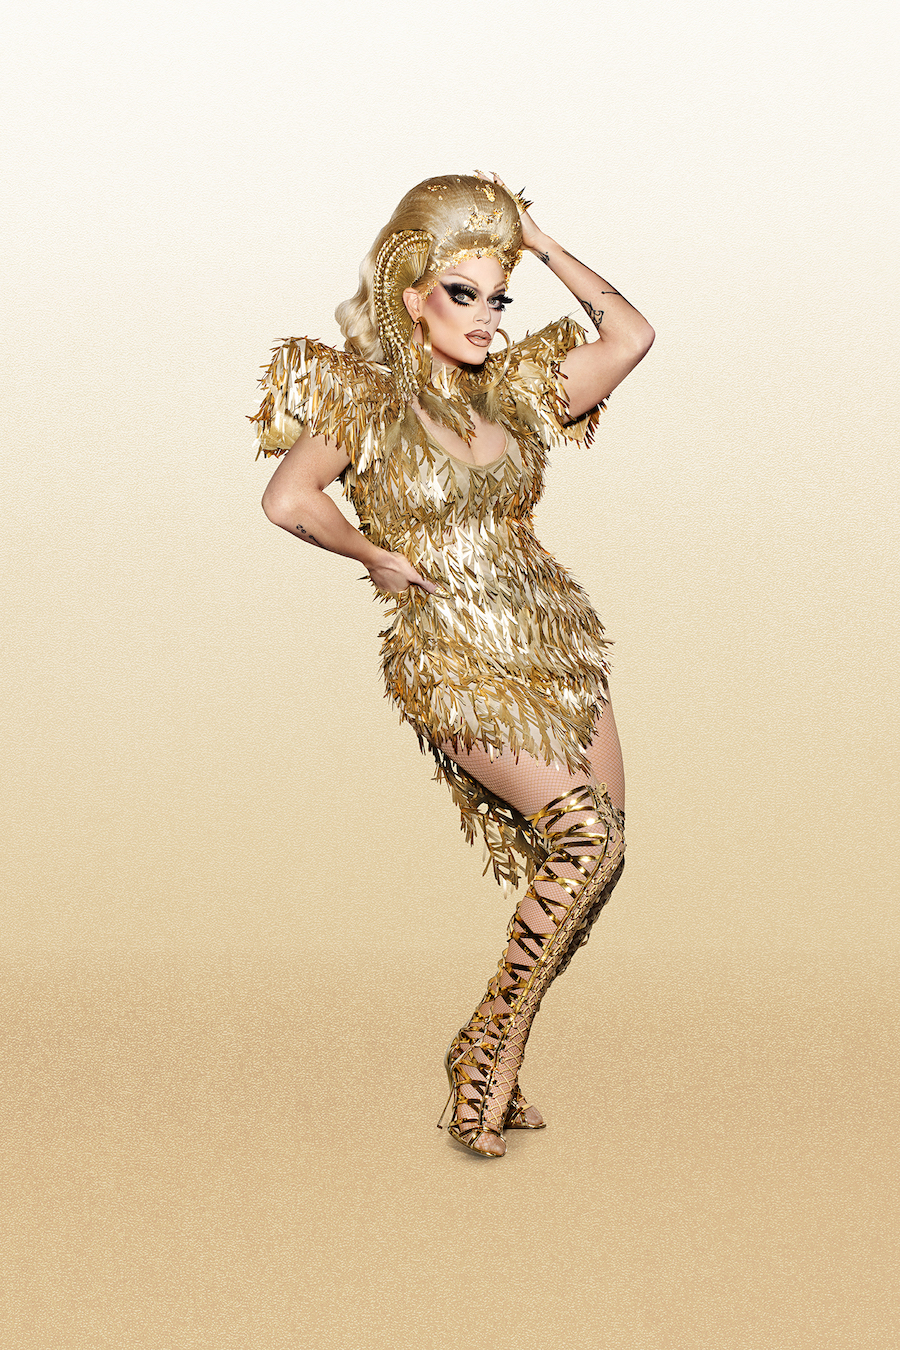 morgan mcmichaels all stars 3 headshot